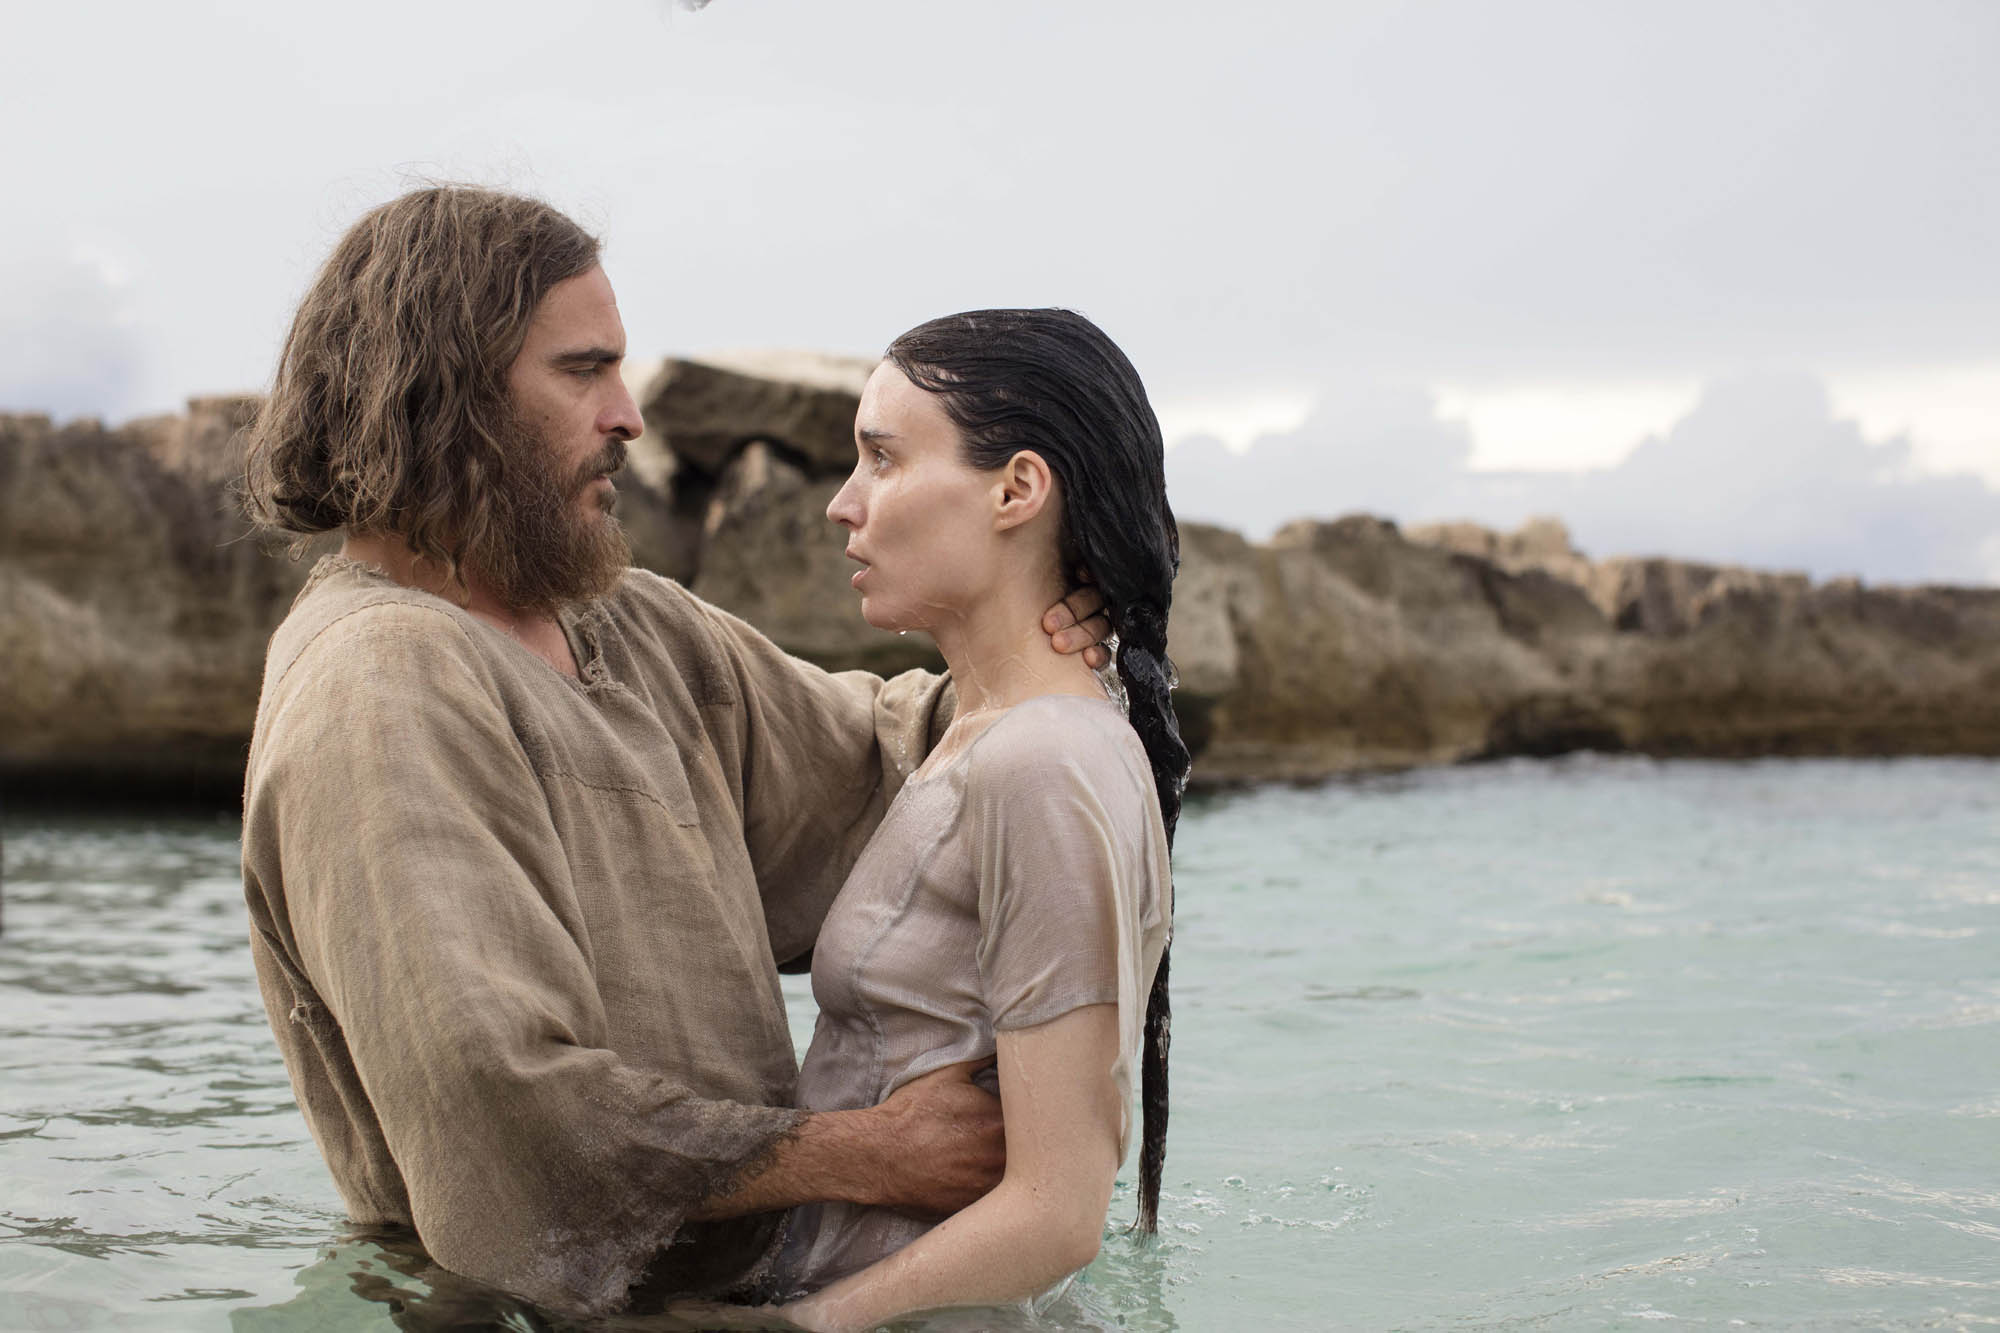 Jesus (Phoenix) and Mary (Mara) embrace in waist-deep water